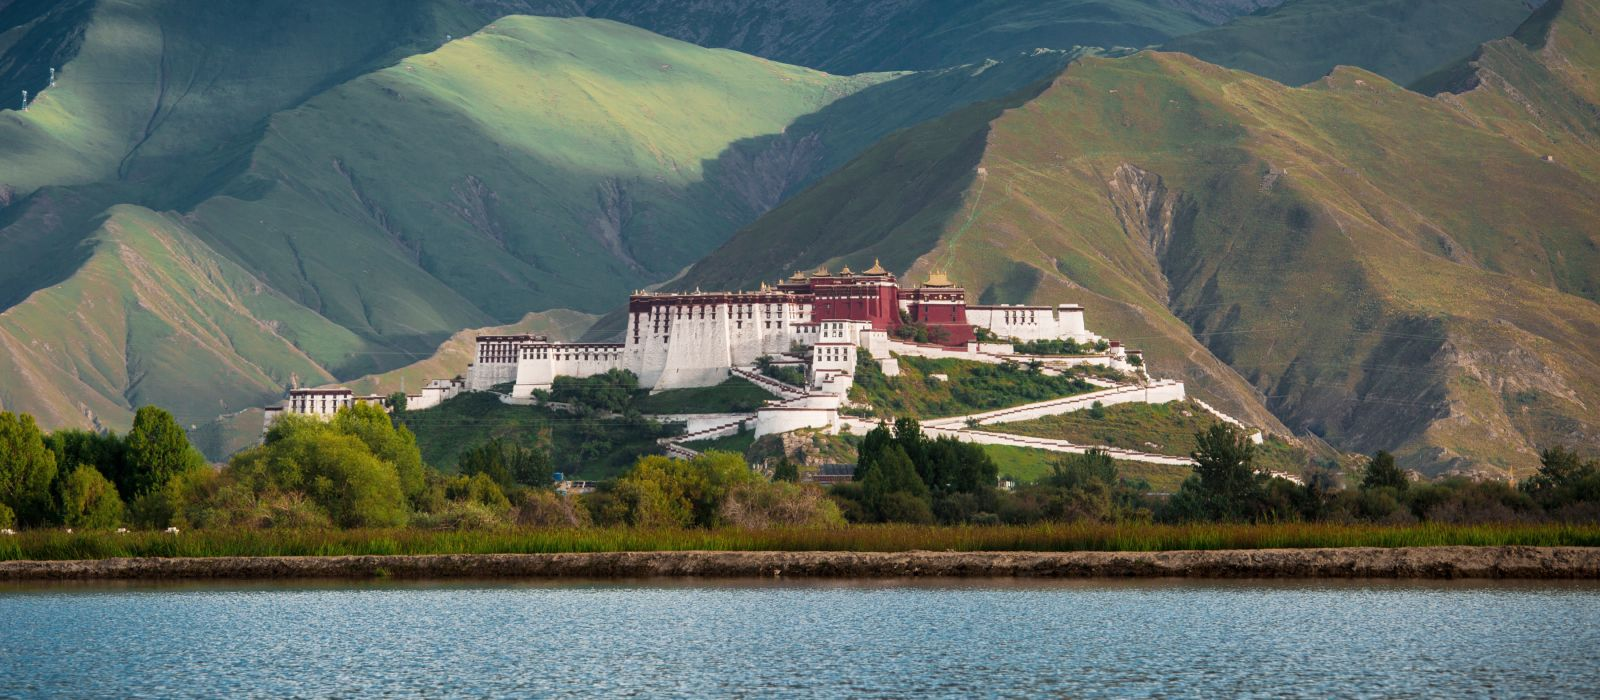 Potala palace in Tibet of China